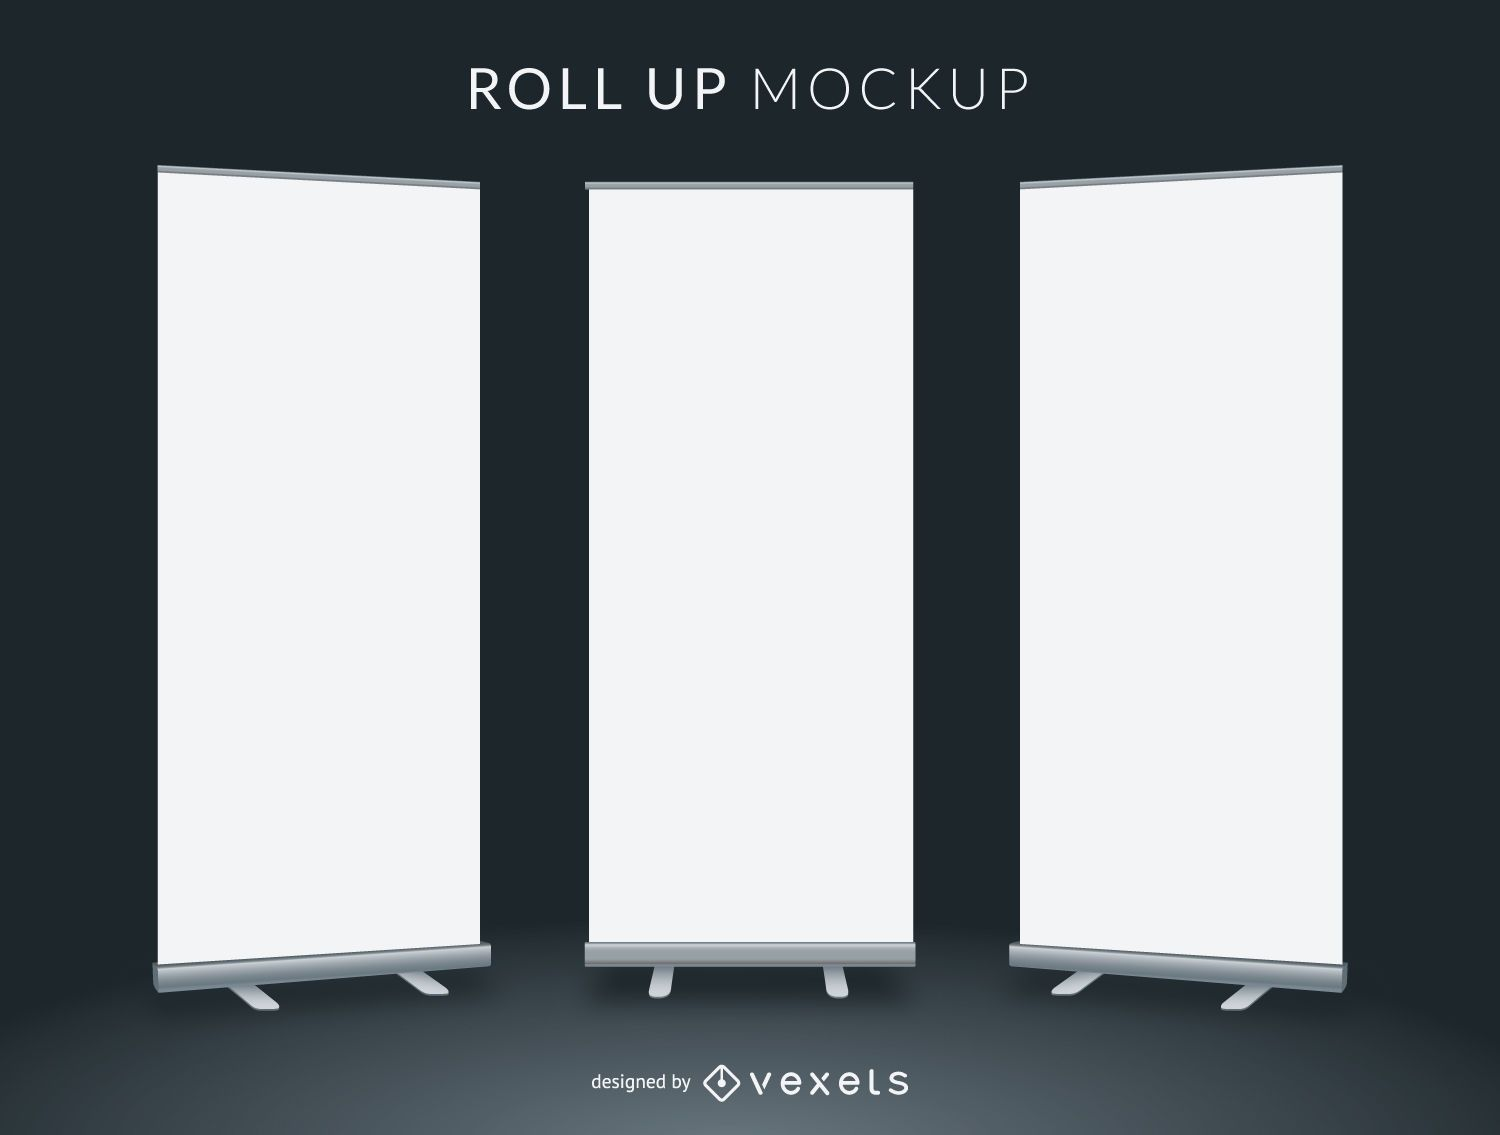 Roll Up Mockup Vector Download